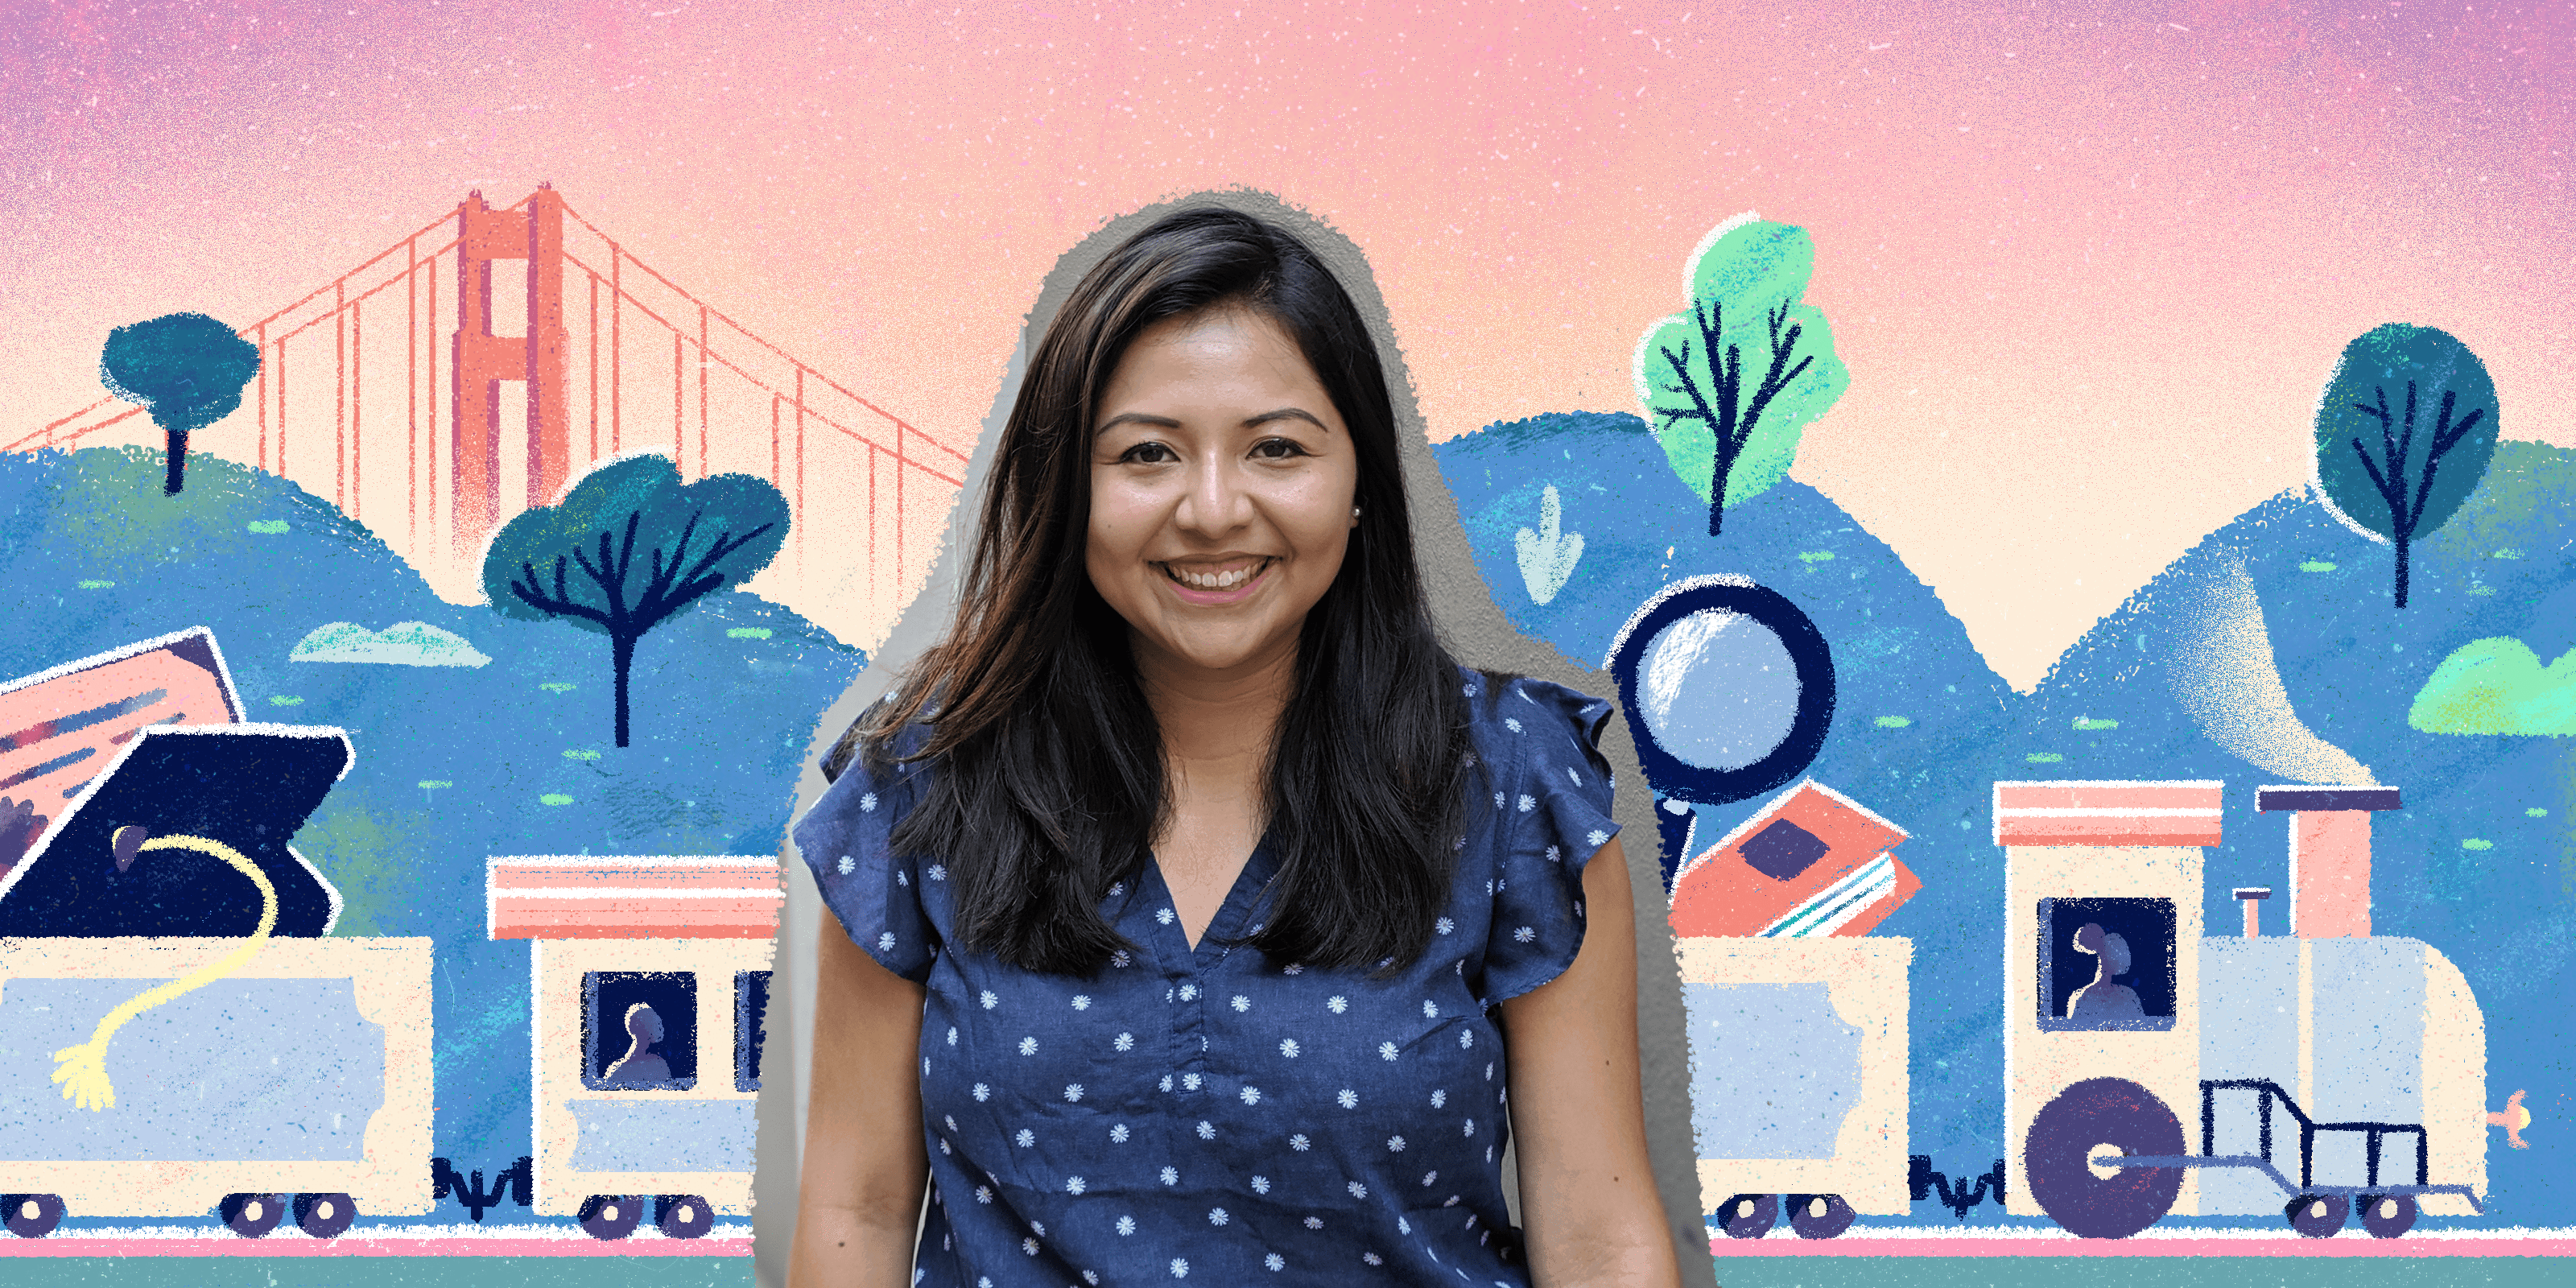 Lesley Alegría on connecting people, storytelling, and her Prince Royce hype song